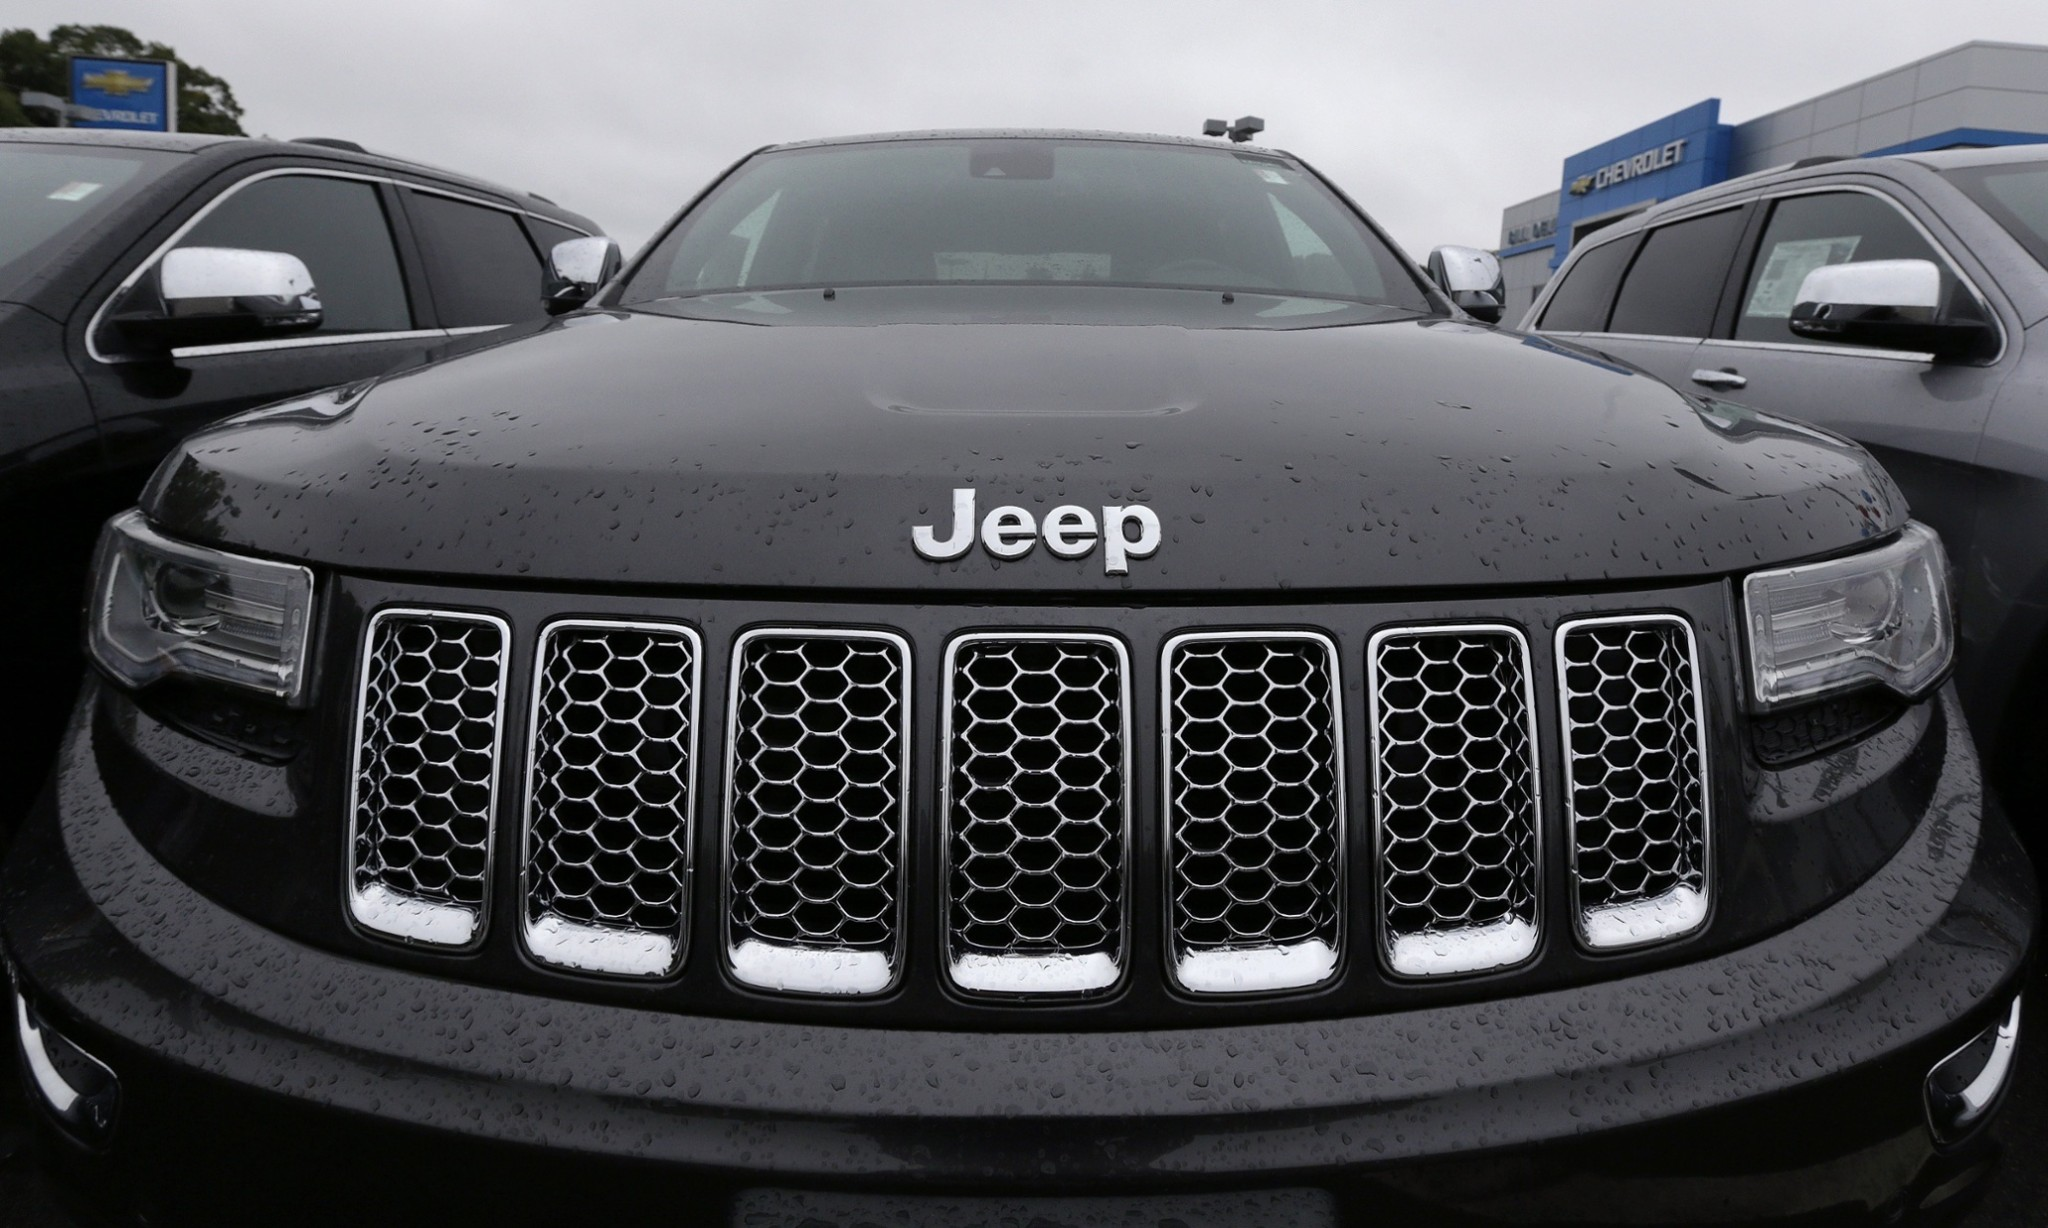 Fiat Chrysler recalls 8,000 more Jeeps over wireless hacking